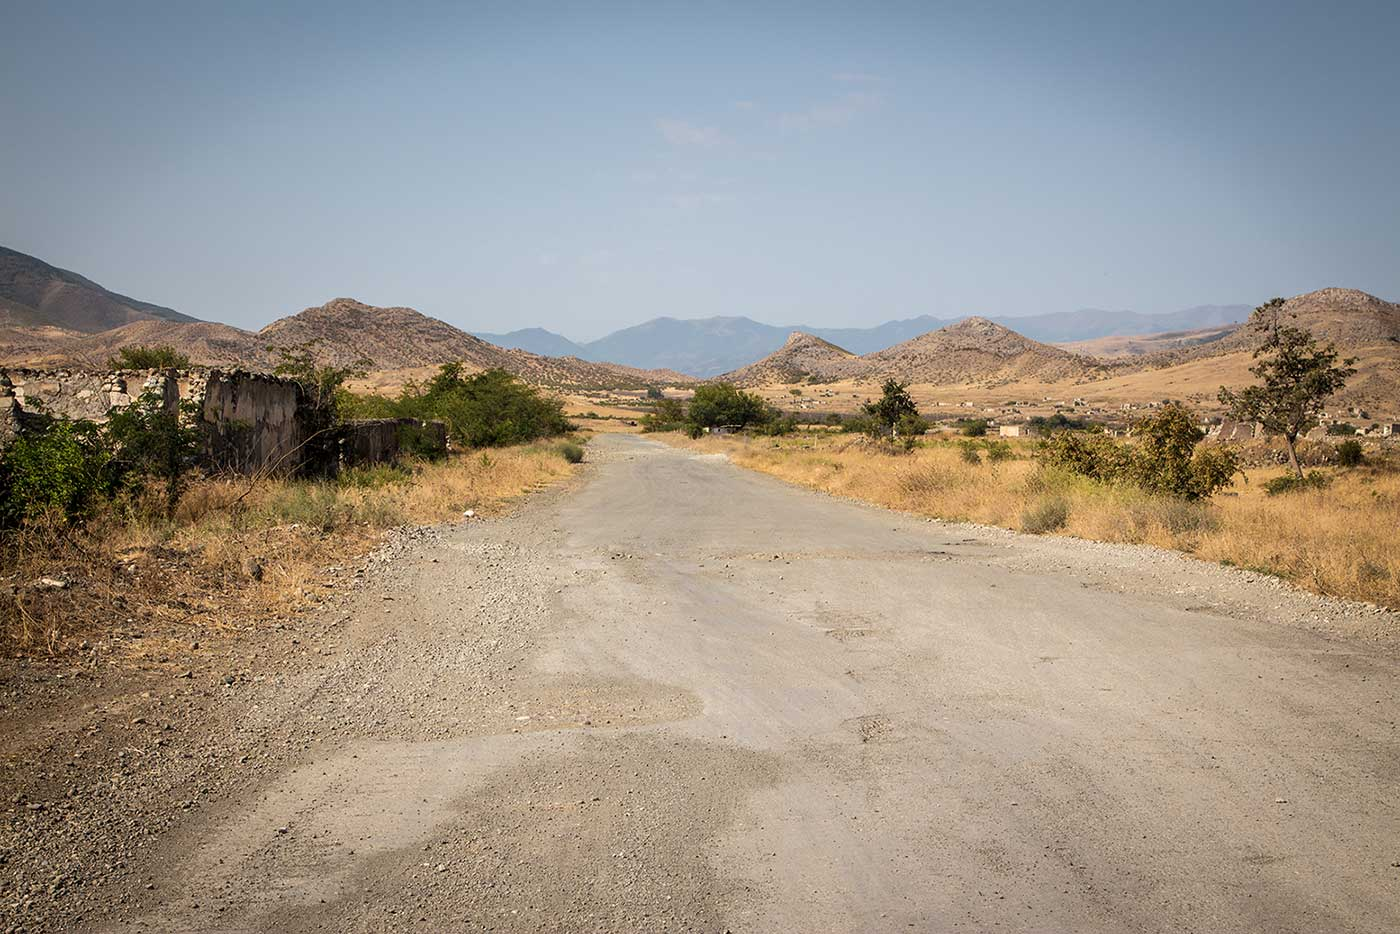 The road out of Agdam. Nagorno-Karabakh (Artsakh Republic).